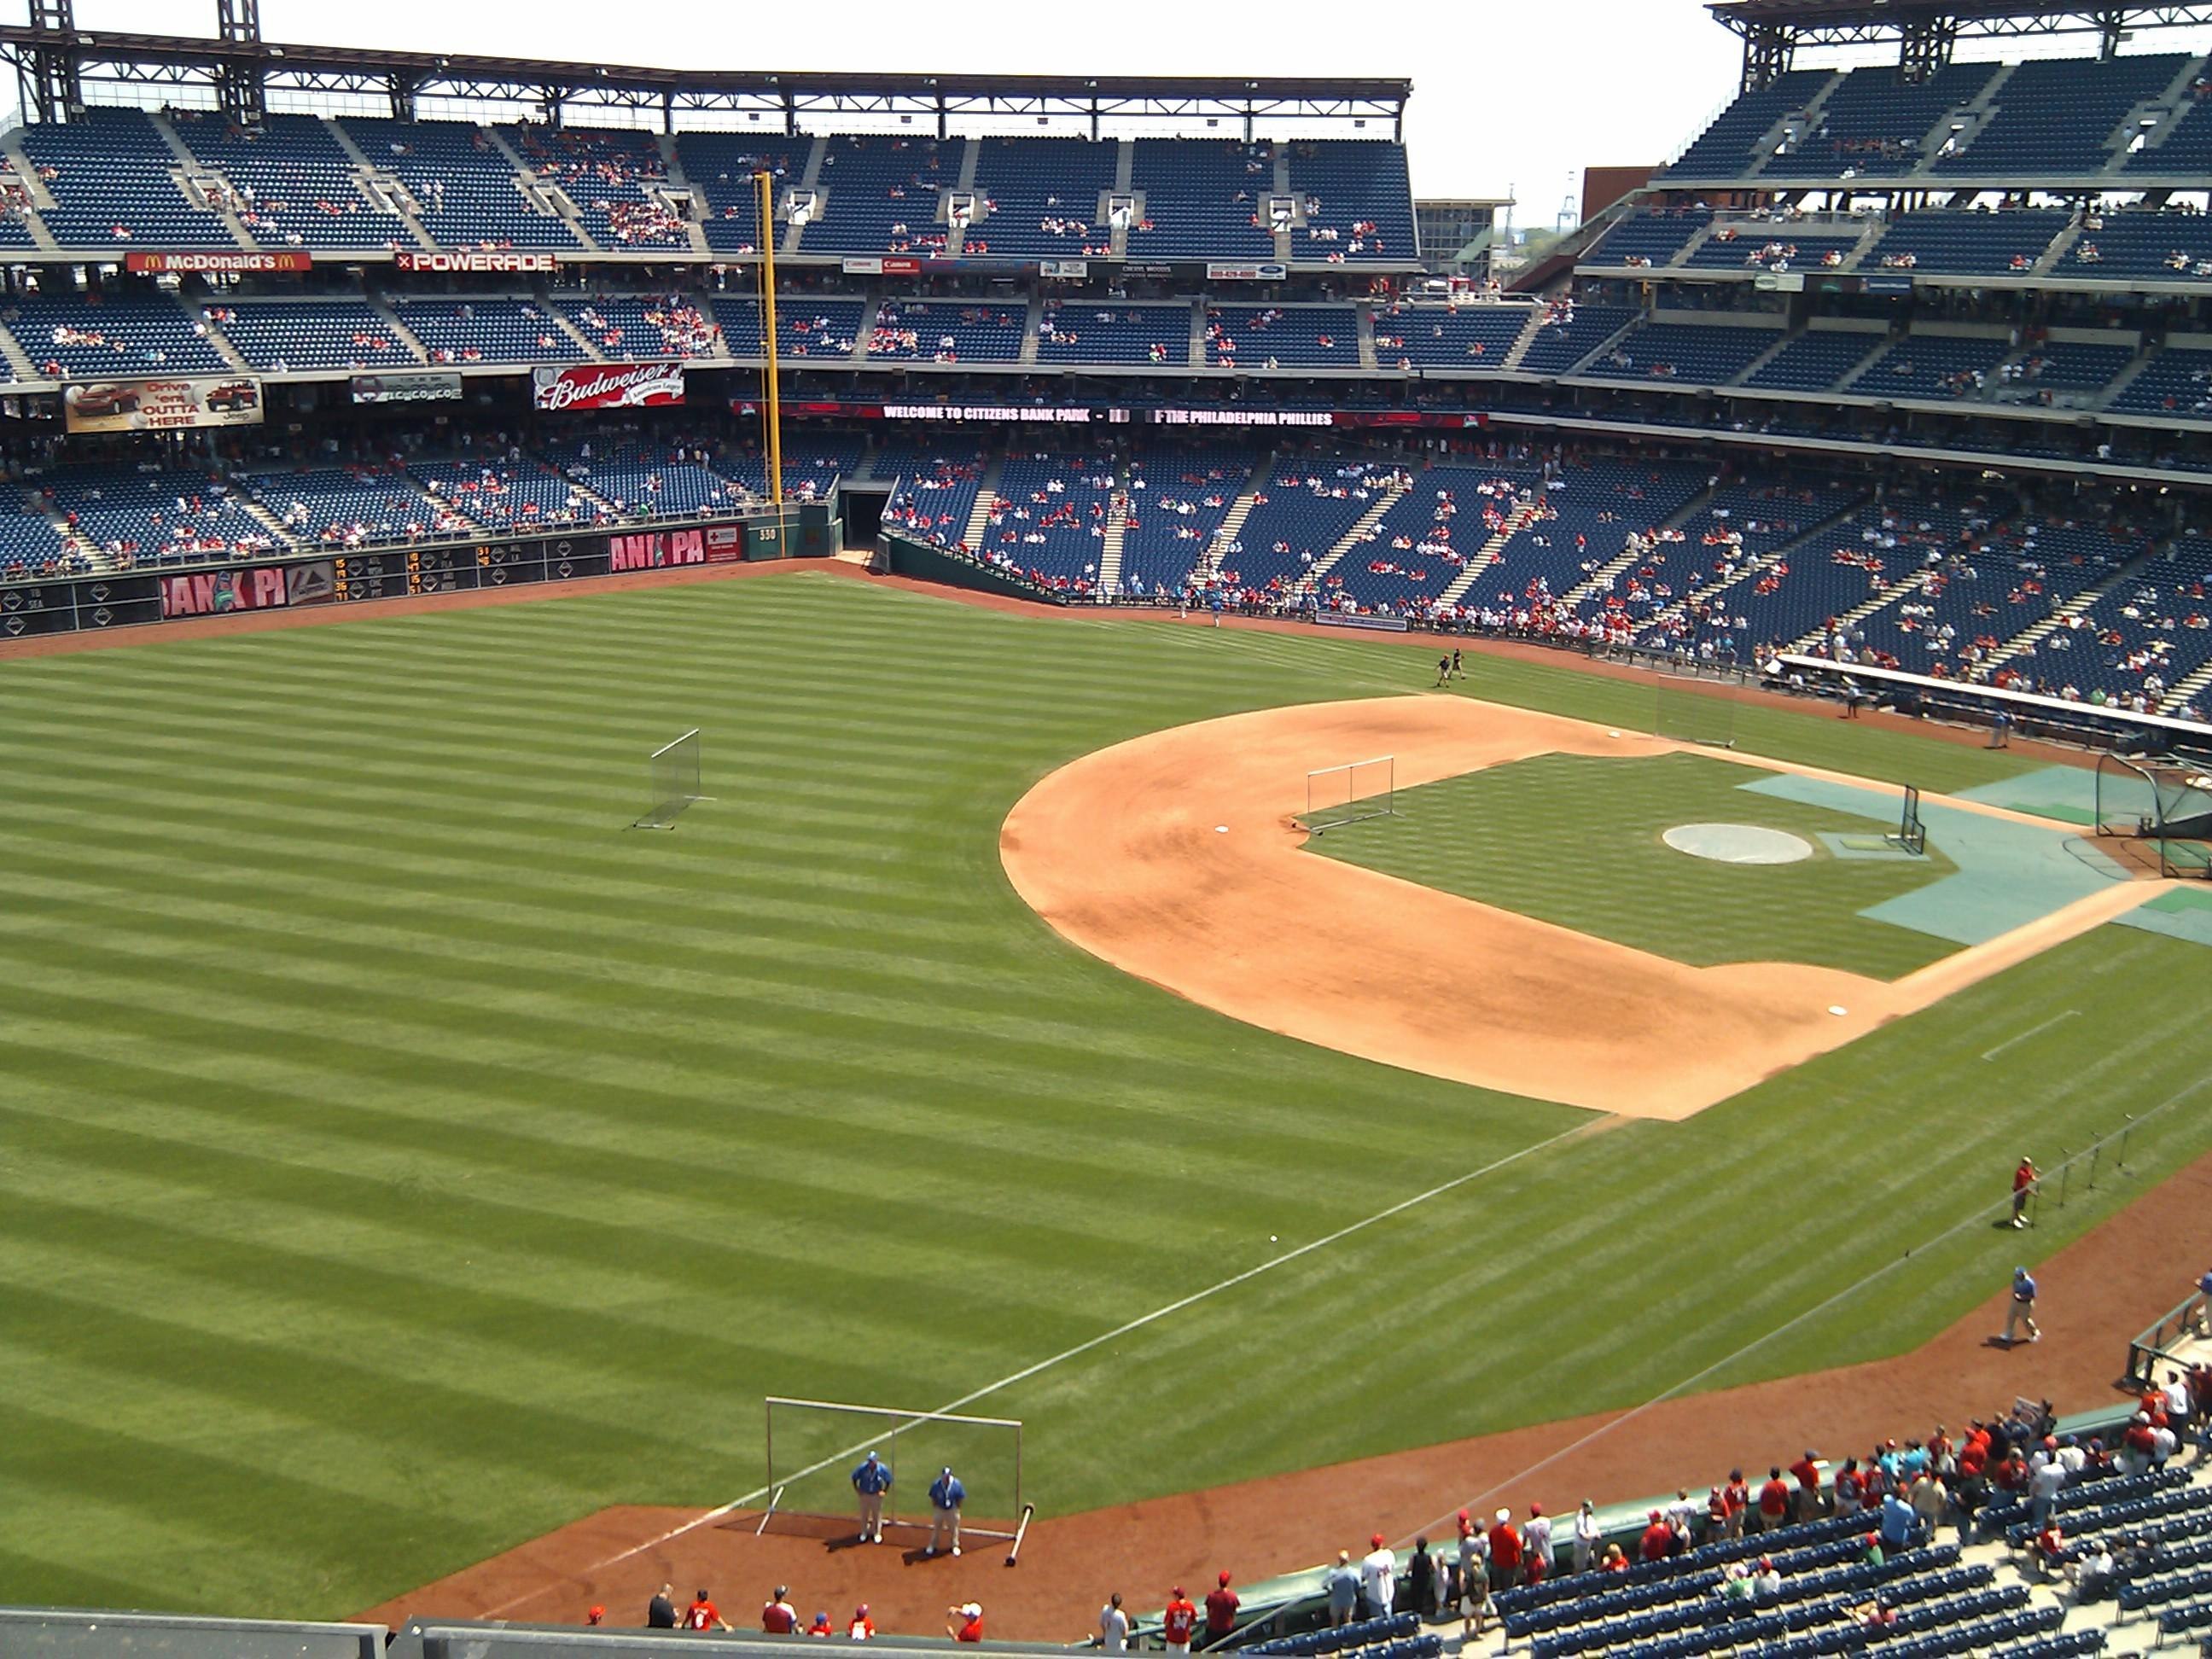 Citizens Bank Park Section 331 Row 4 Seat 19